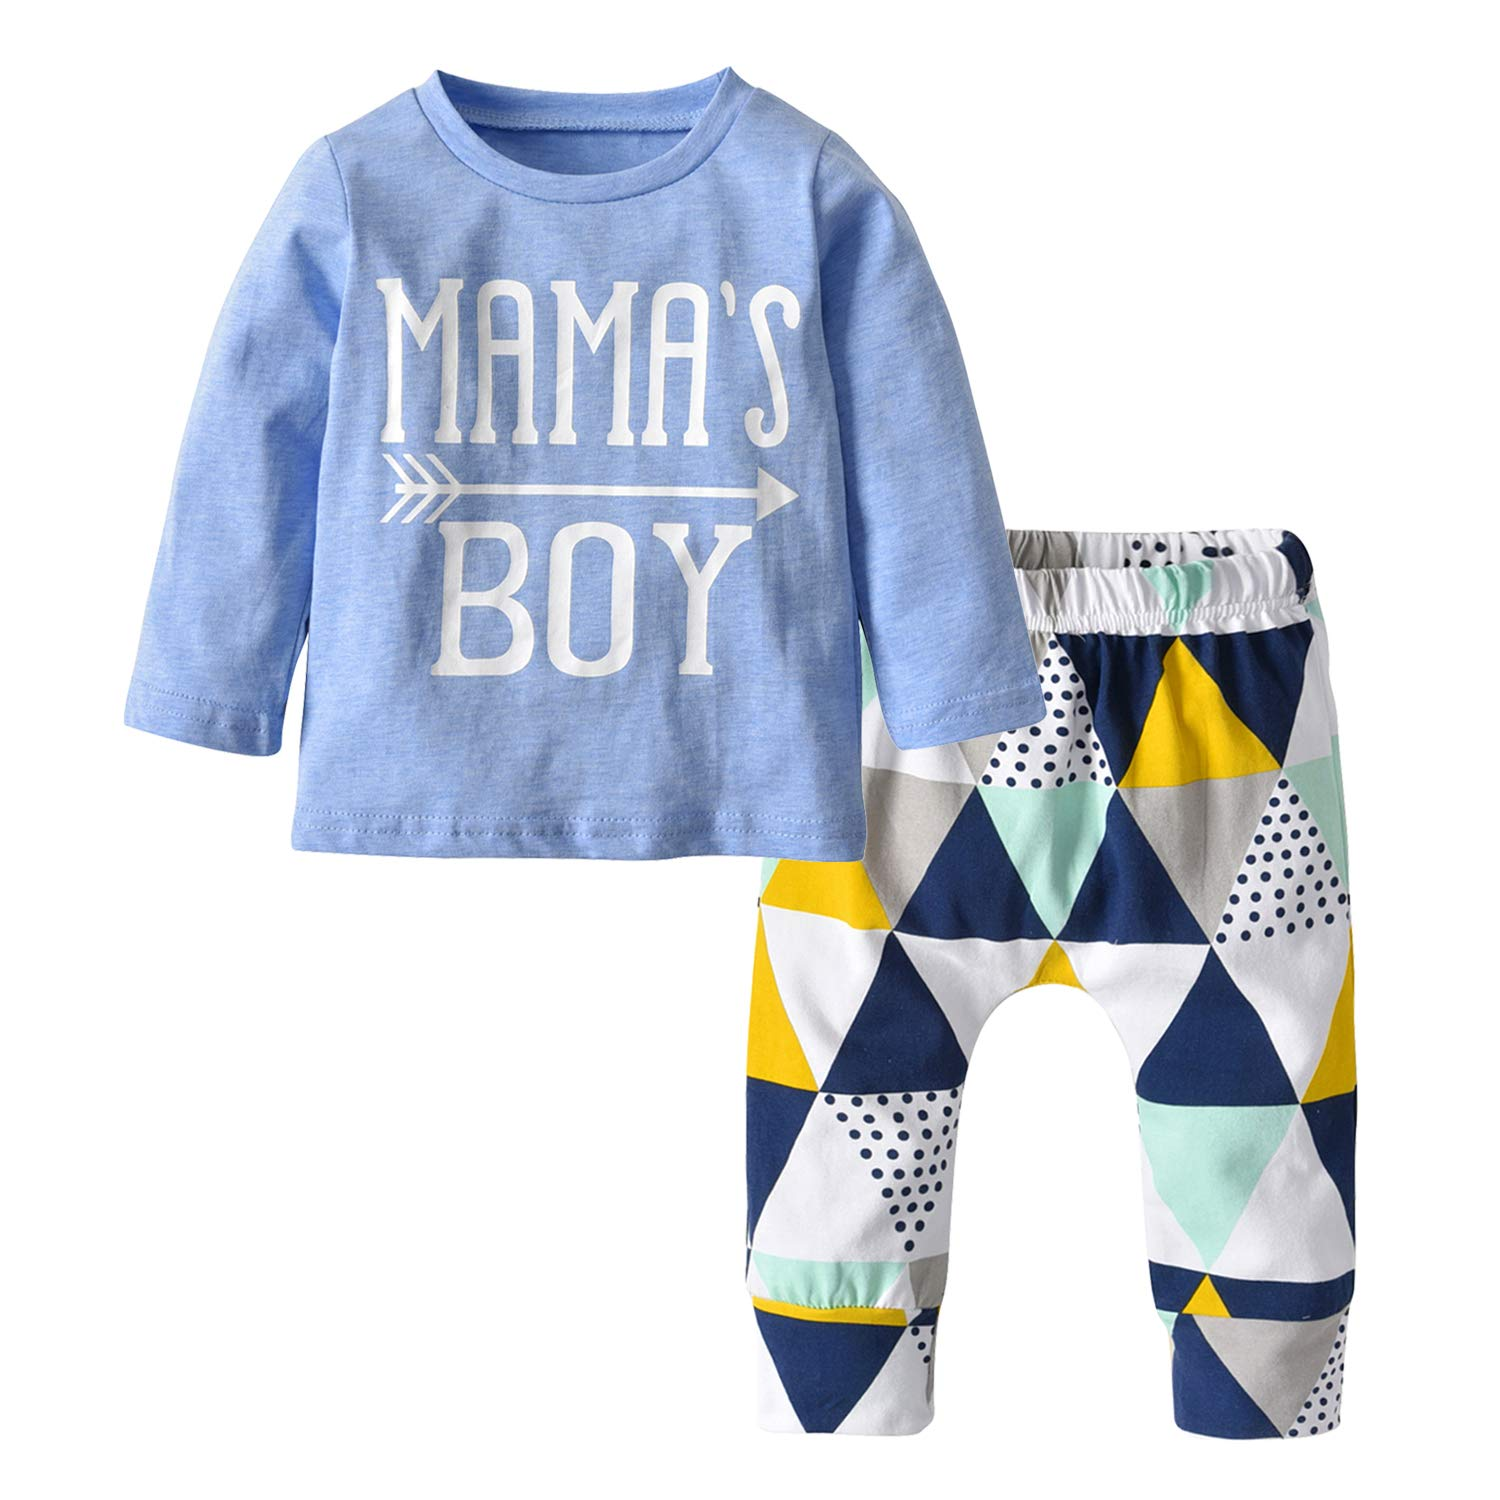 Baby Boys Mama's Boy Short Sleeve T-Shirt Tops Geometric Pants Clothes Set